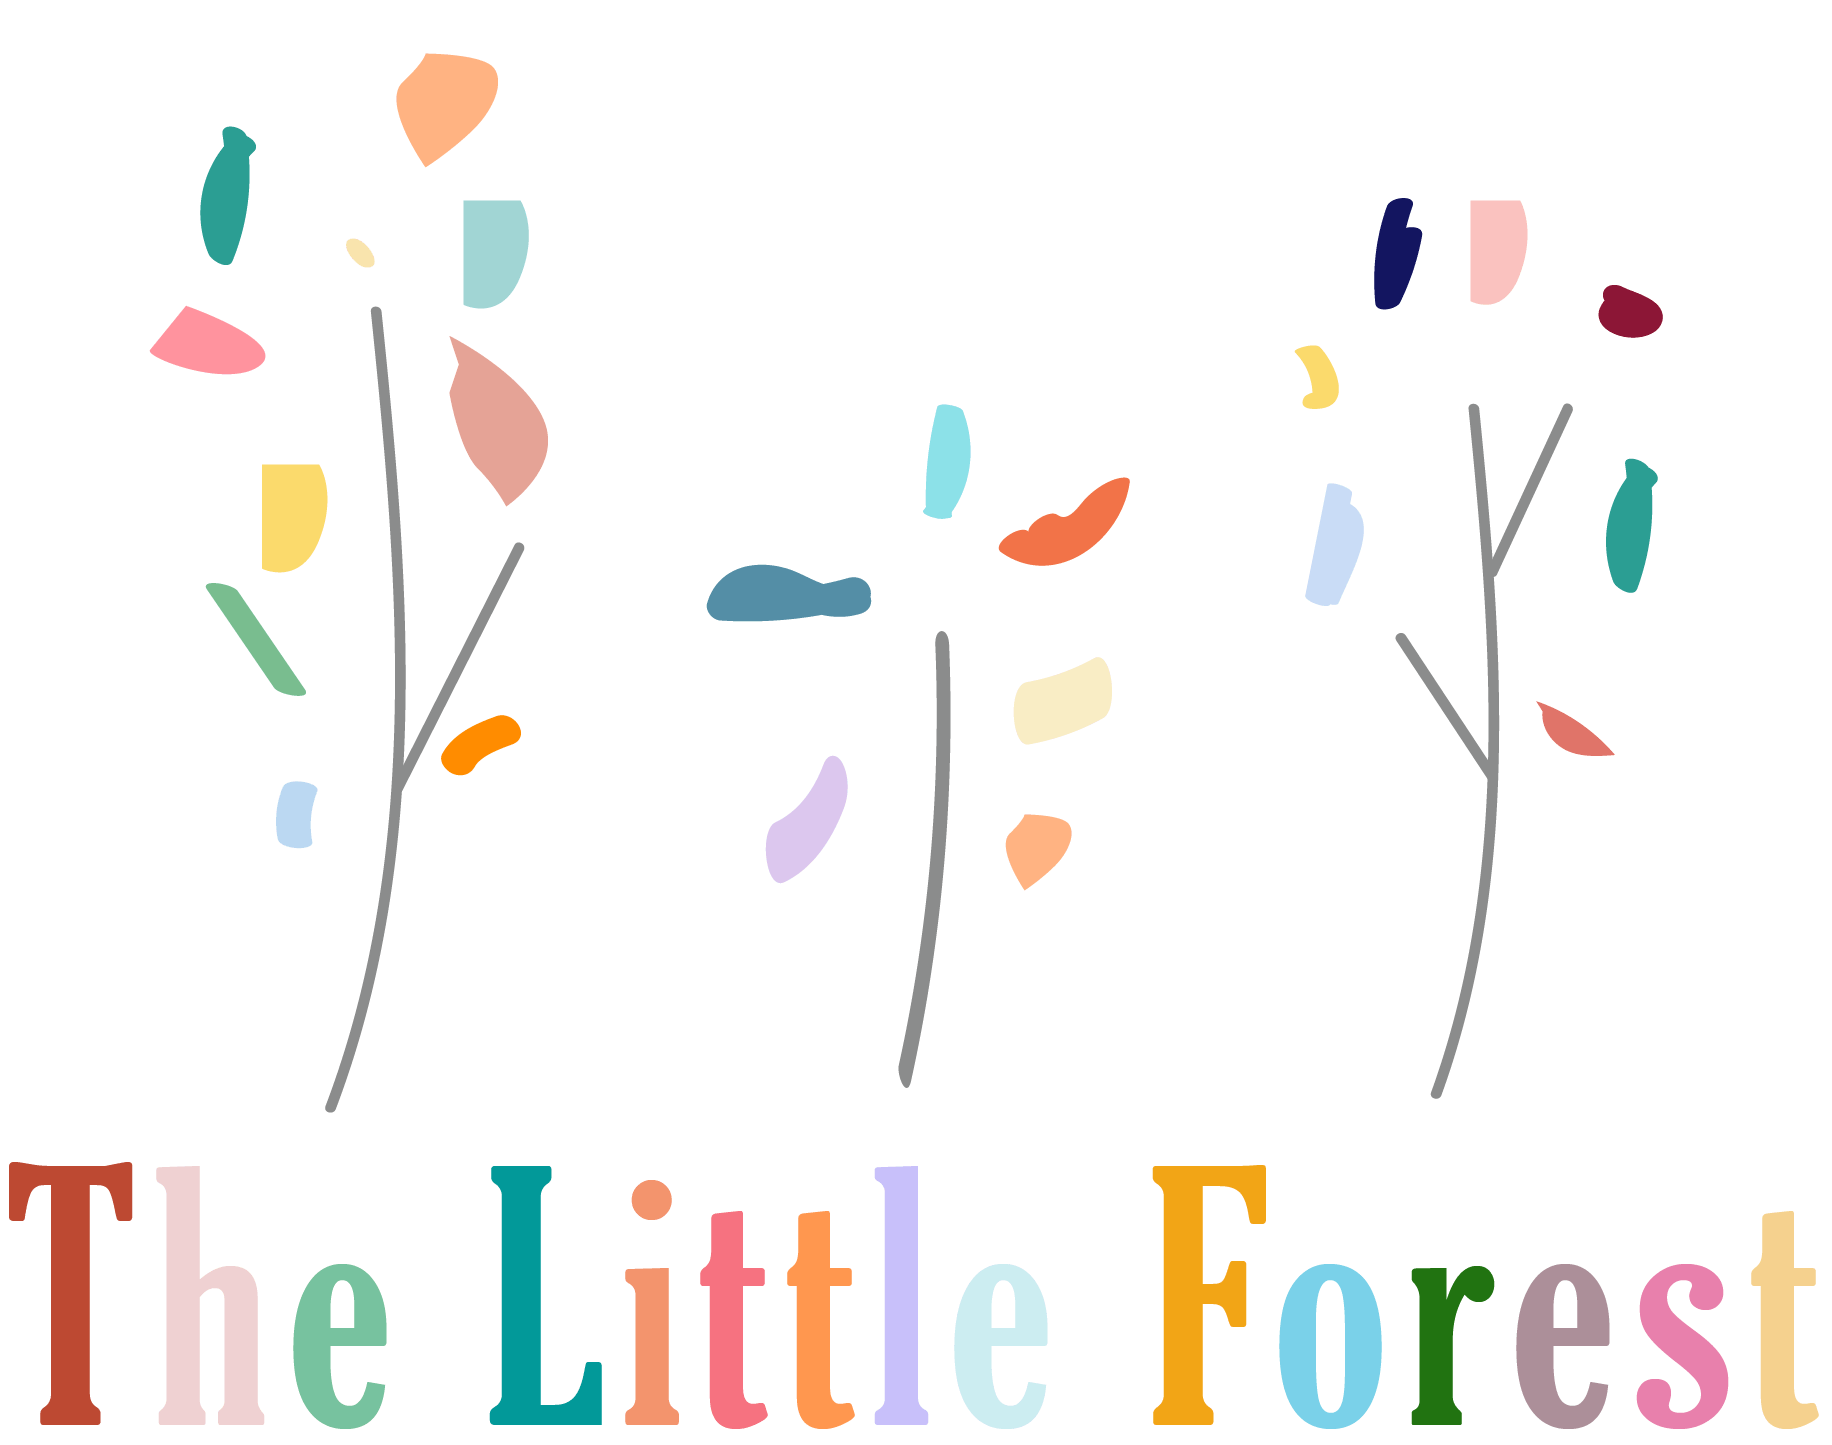 The Little Forest